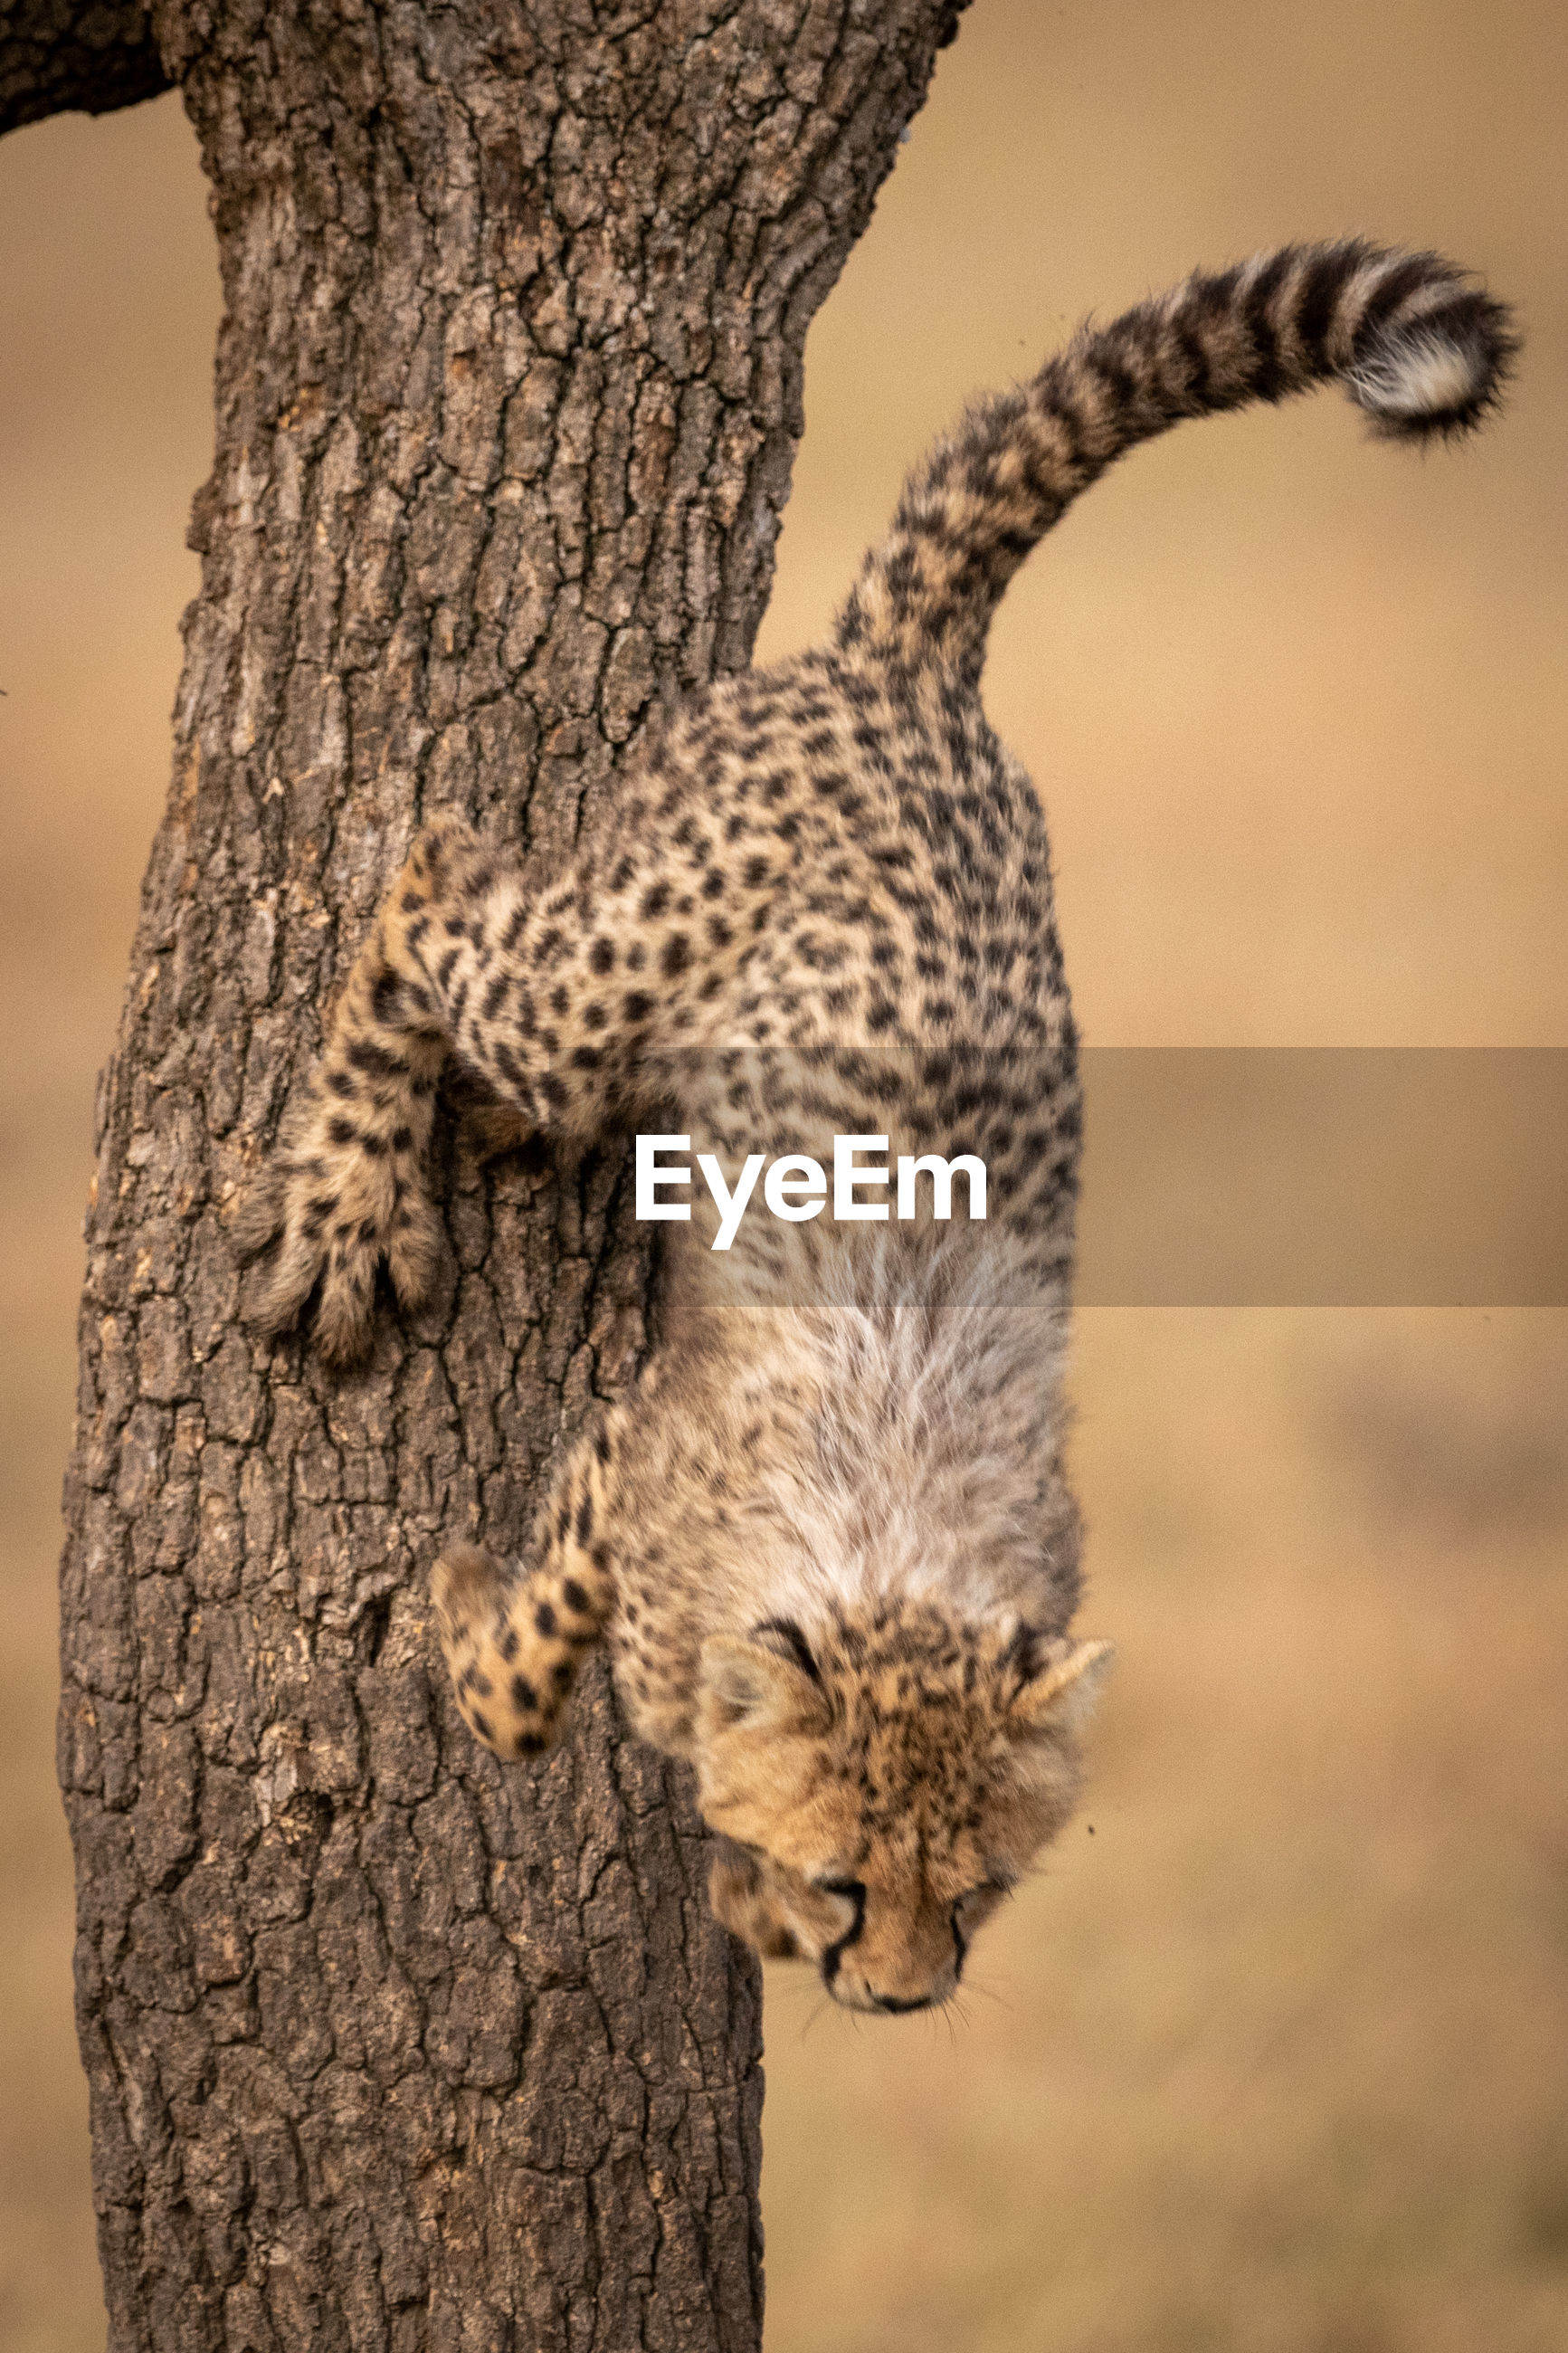 Cheetah jumping from tree trunk